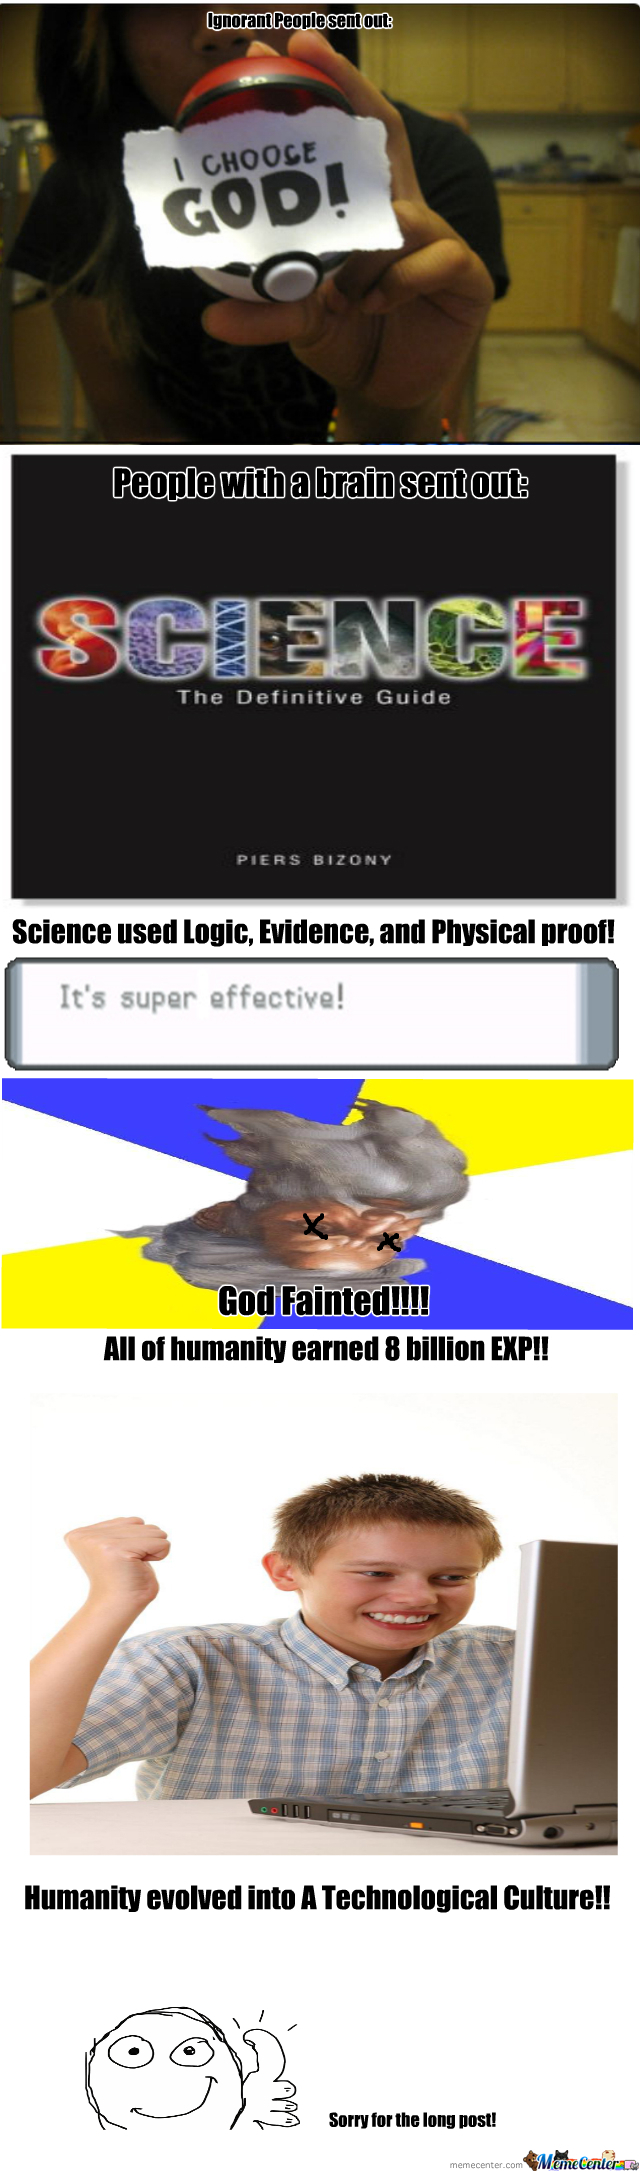 God V. Science